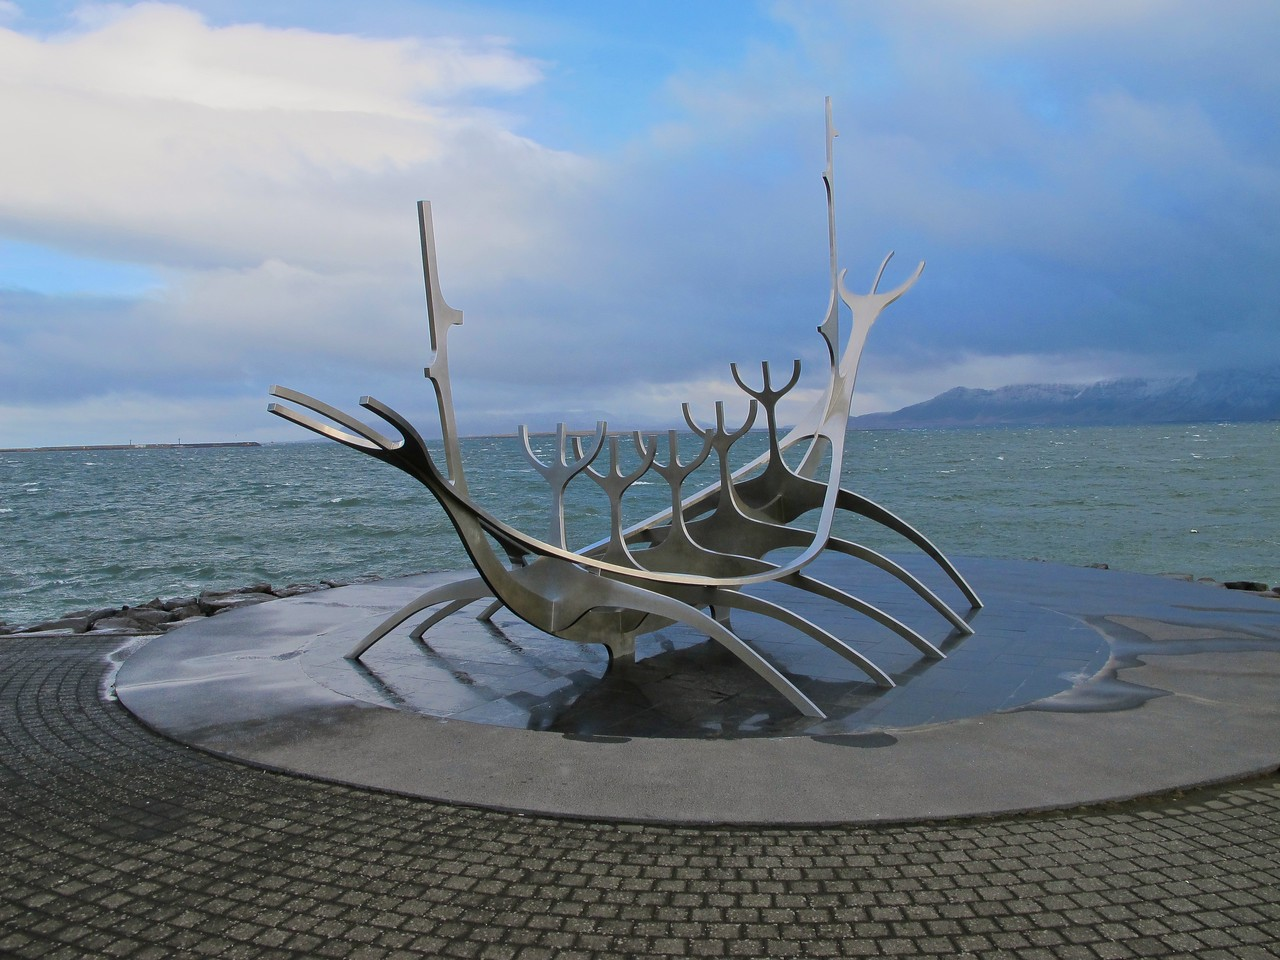 The sculpture was the winner of an outdoor sculpture competition to commemorate the 200th anniversary of the city of Reykjavík.